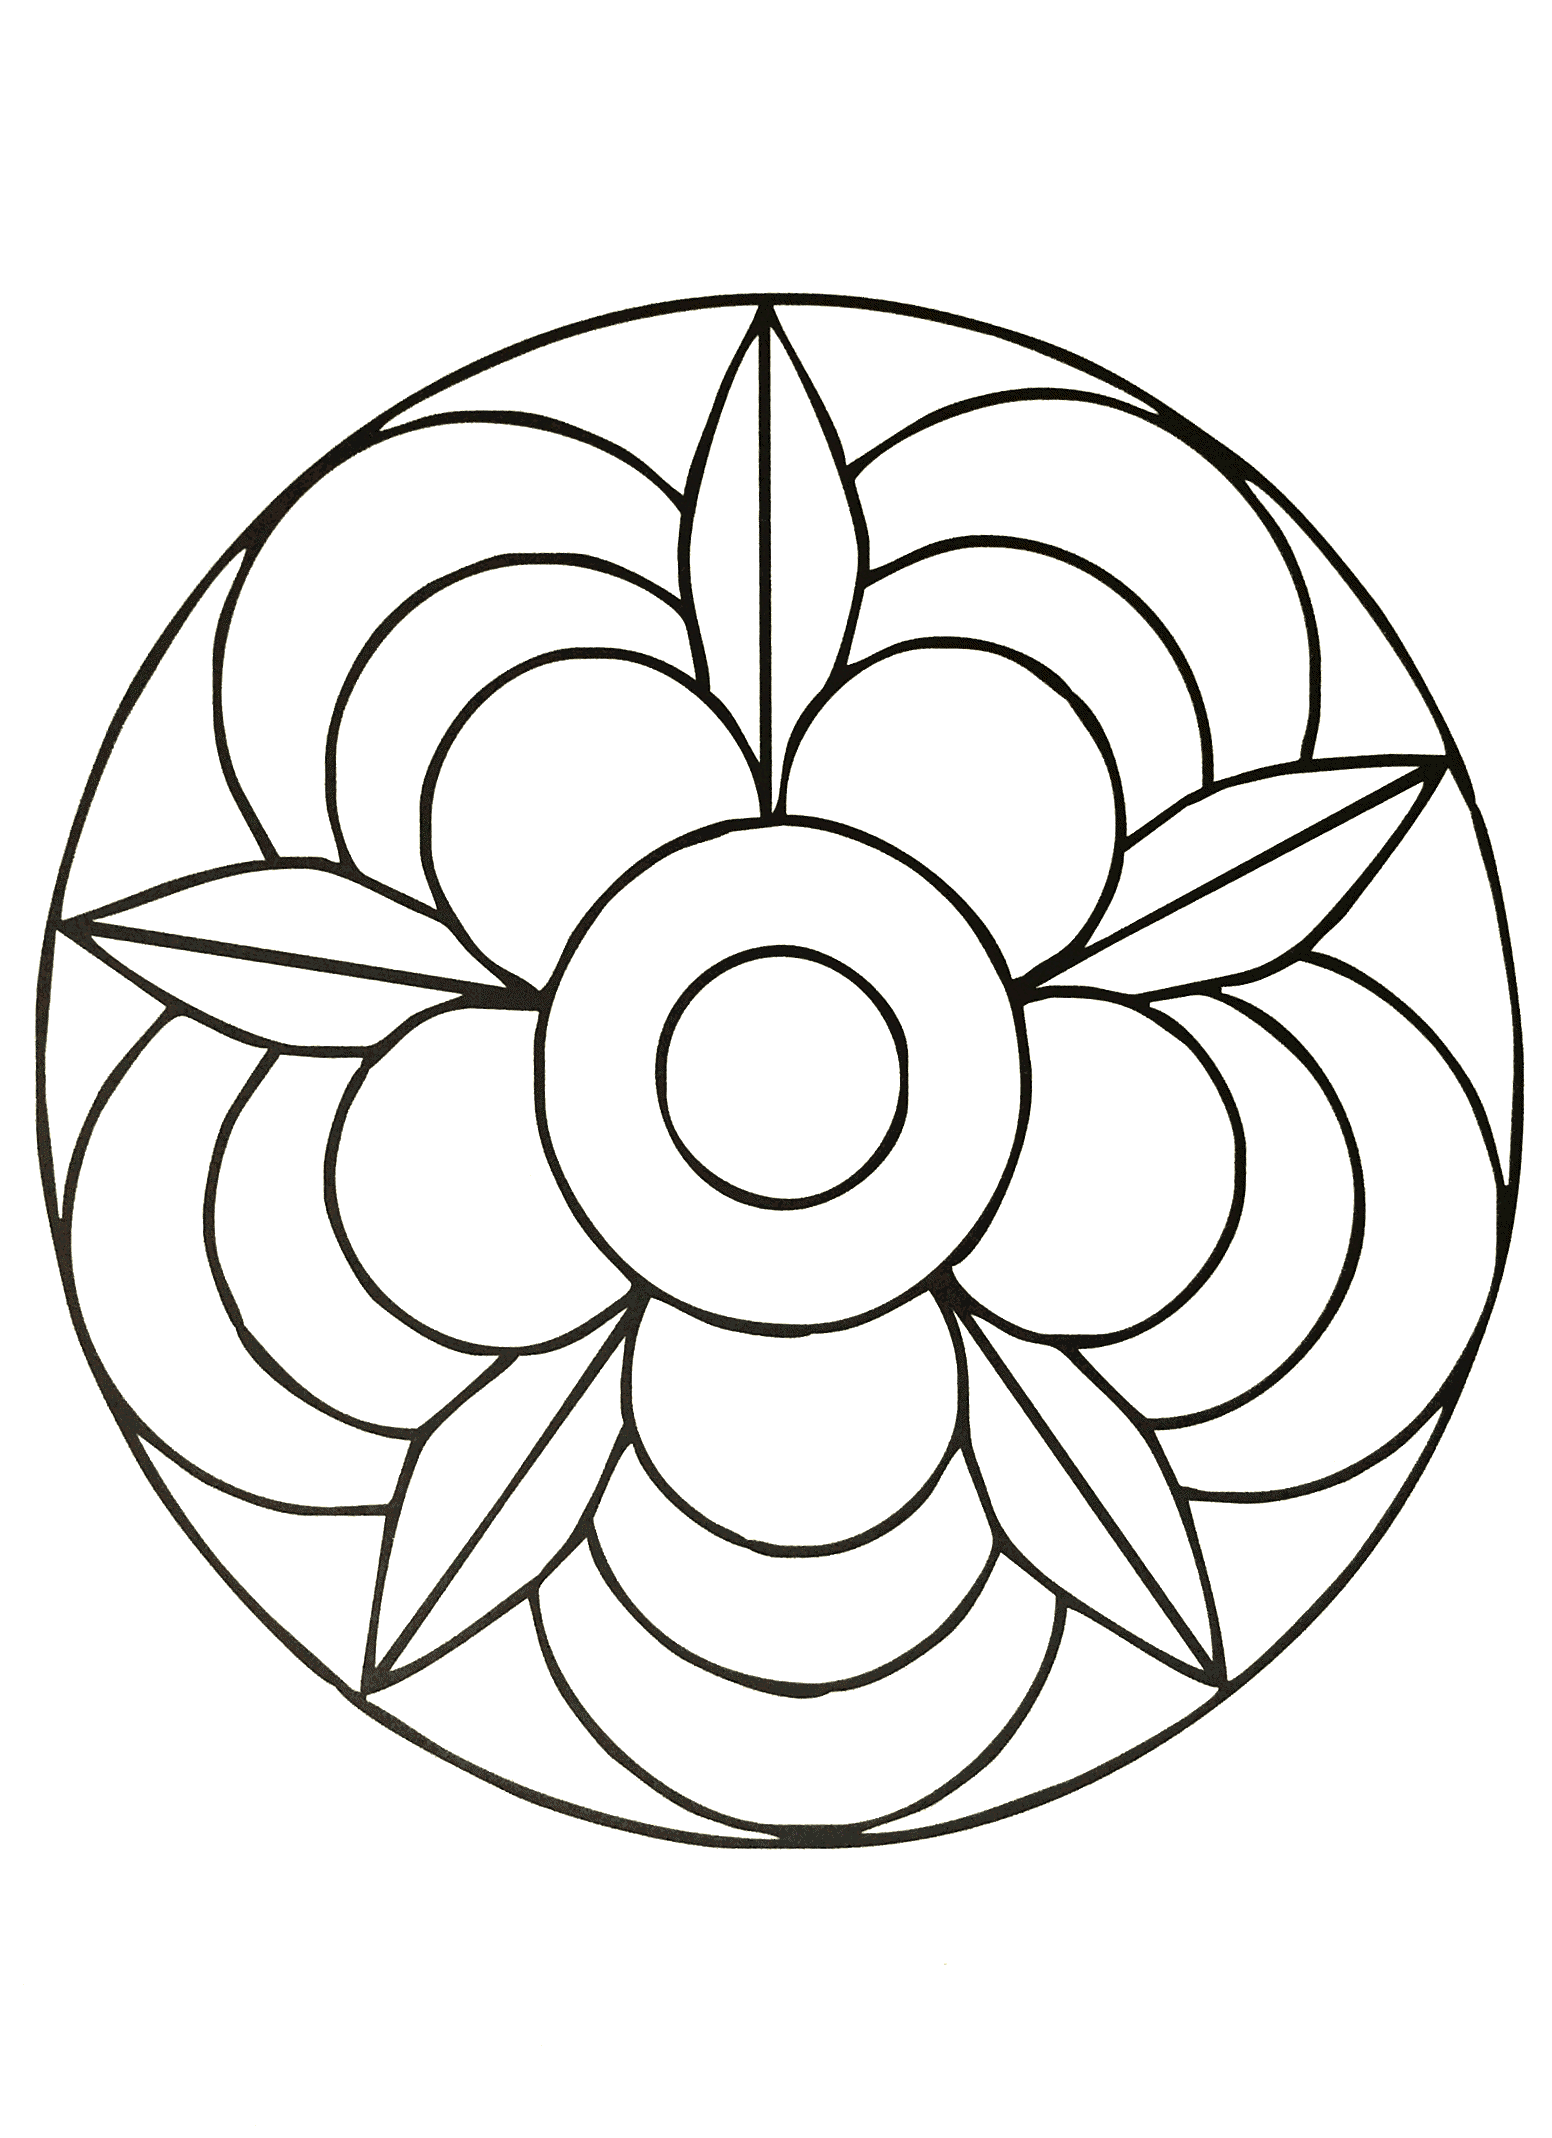 simple mandala 40 from the gallery kids mandalas - Simple Mandala Coloring Pages Kid